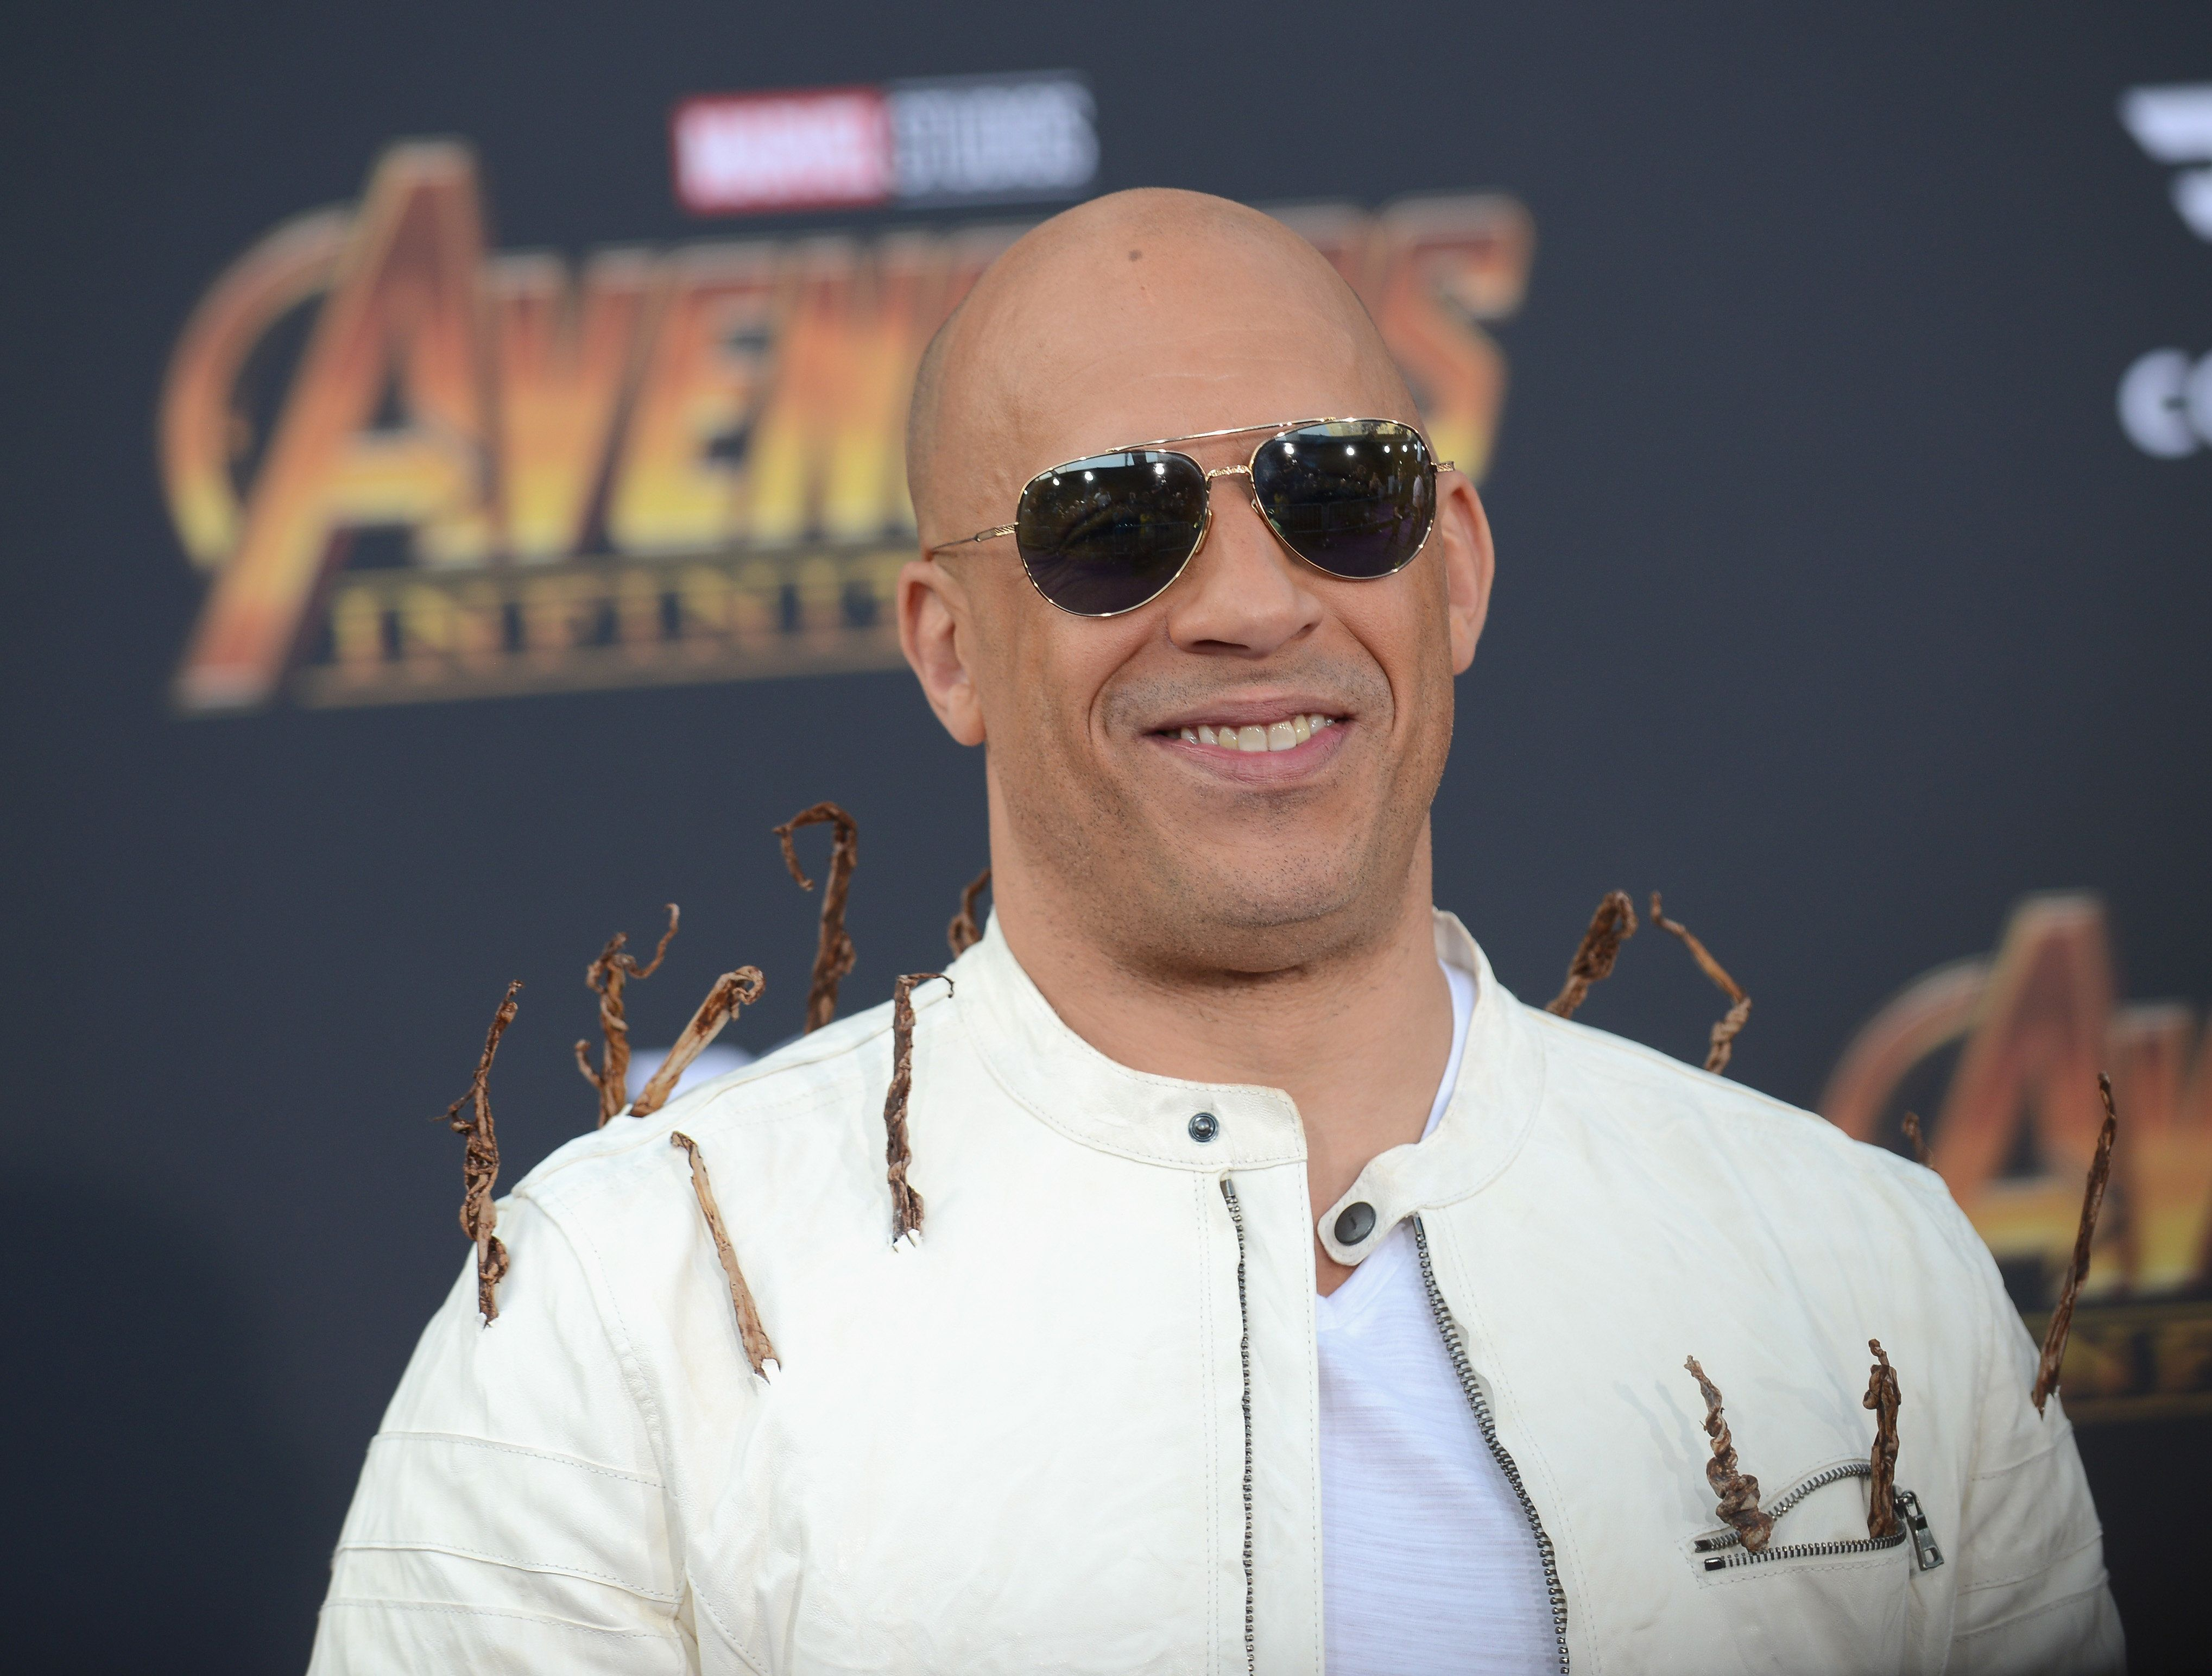 LOS ANGELES, CA - APRIL 23: Actor Vin Diesel arrives for the Premiere Of Disney And Marvel's 'Avengers: Infinity War' held on April 23, 2018 in Los Angeles, California.  (Photo by Albert L. Ortega/Getty Images)